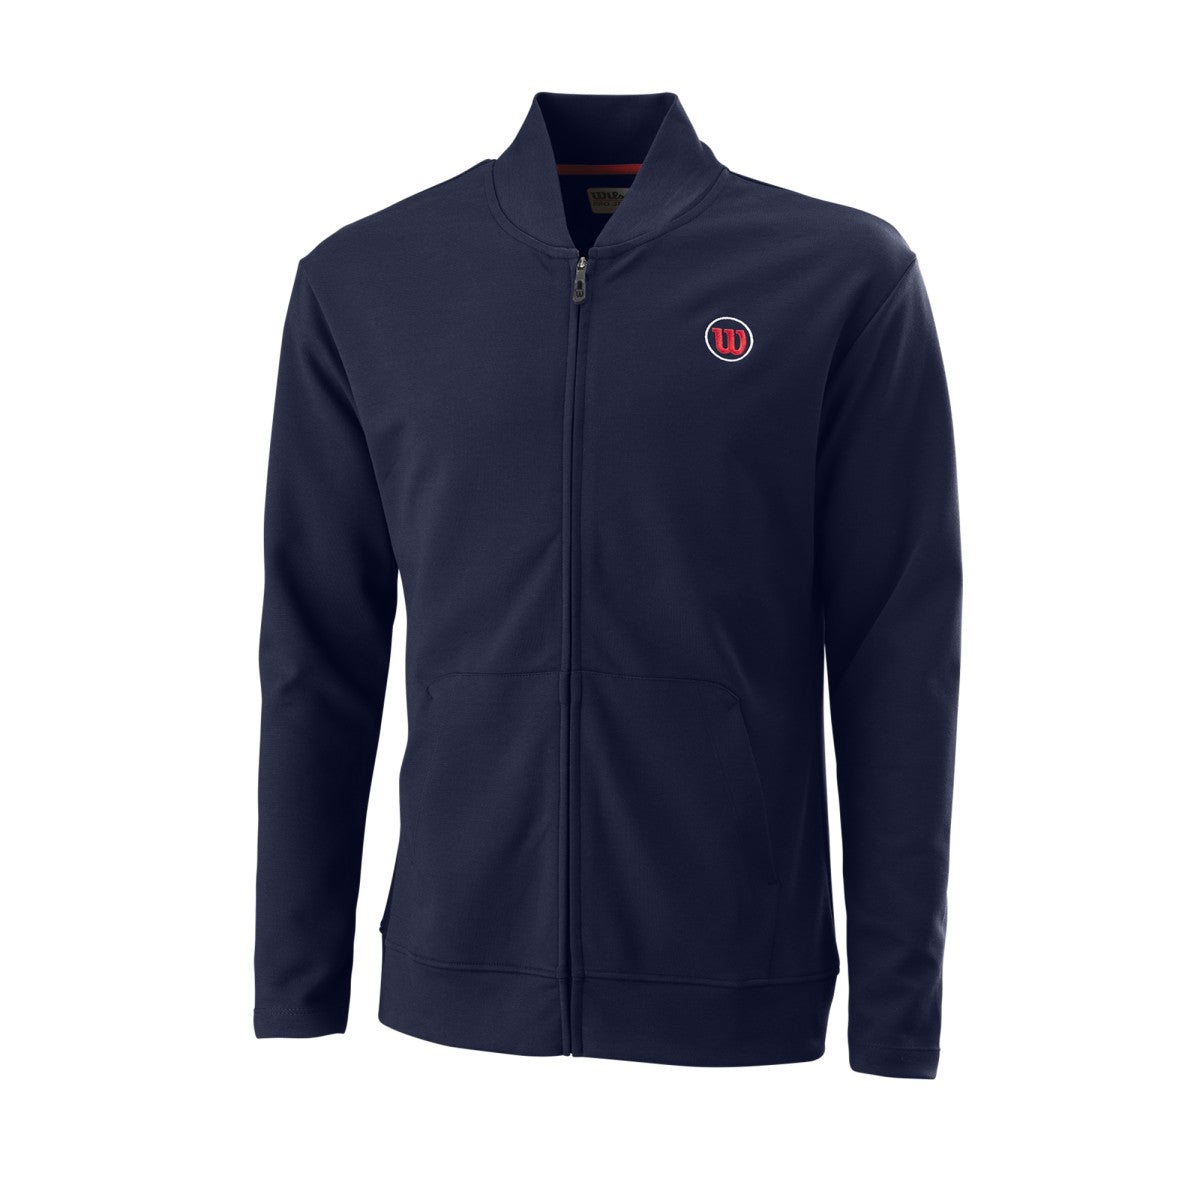 Men's Pro Staff Classic Jacket